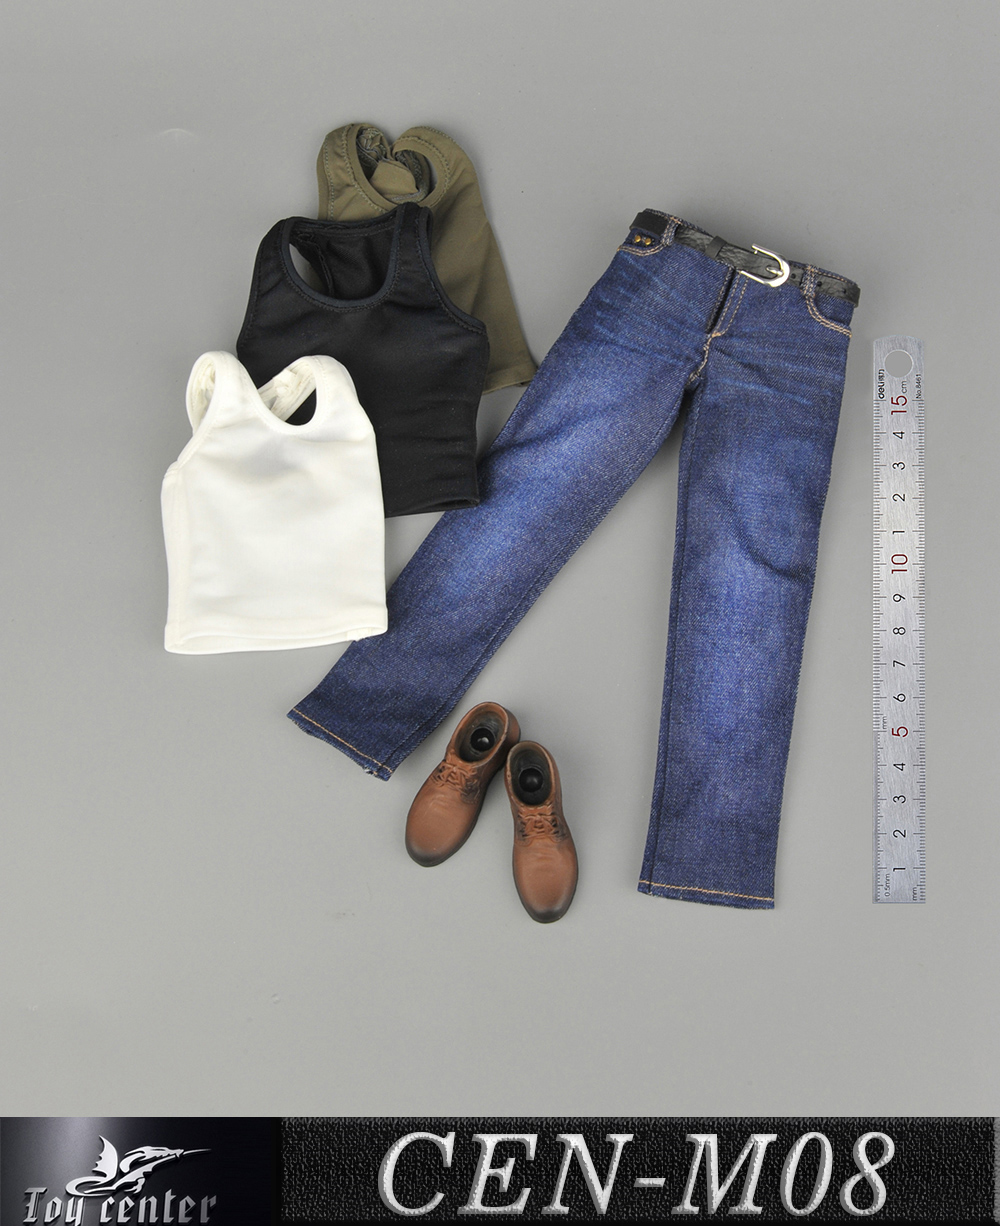 NEW PRODUCT: Toy Center: 1/6 Sports Vest Jeans Set - Three Colors A/B/C 13424310